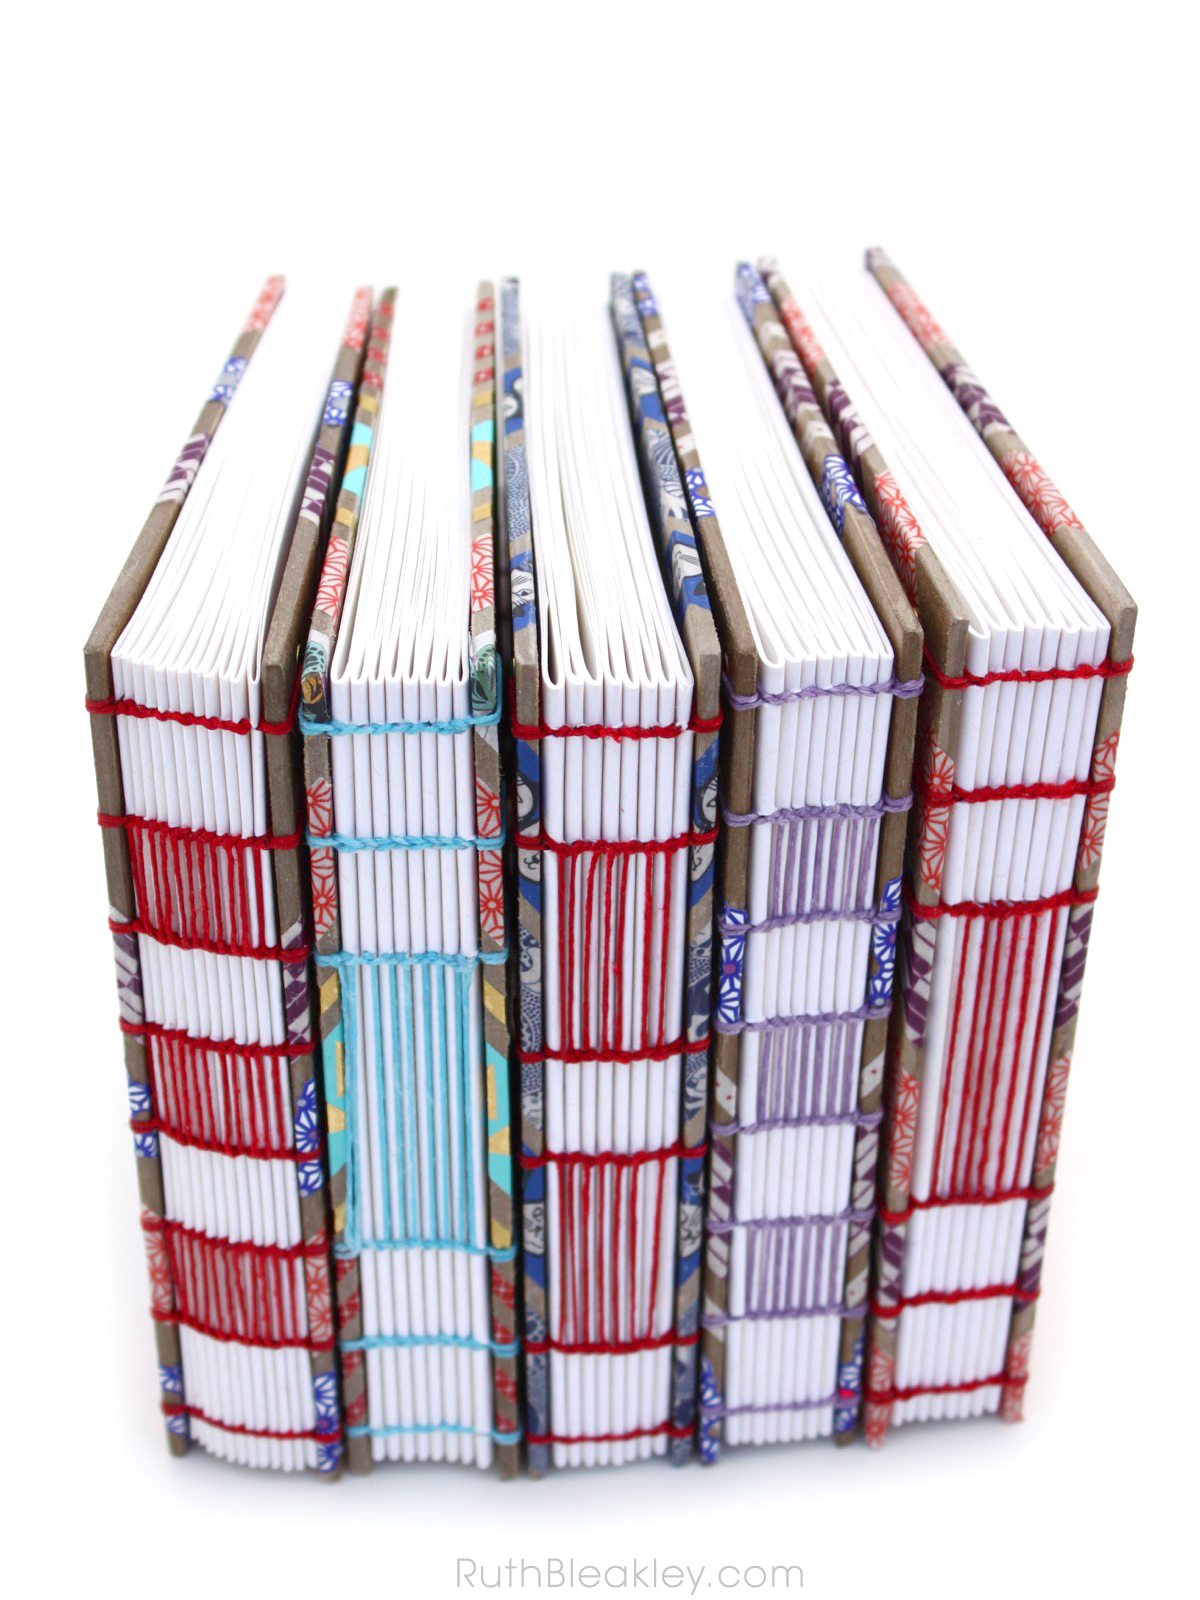 Washi Tape Journals with ladder coptic stitch handmade by Ruth Bleakley - 1